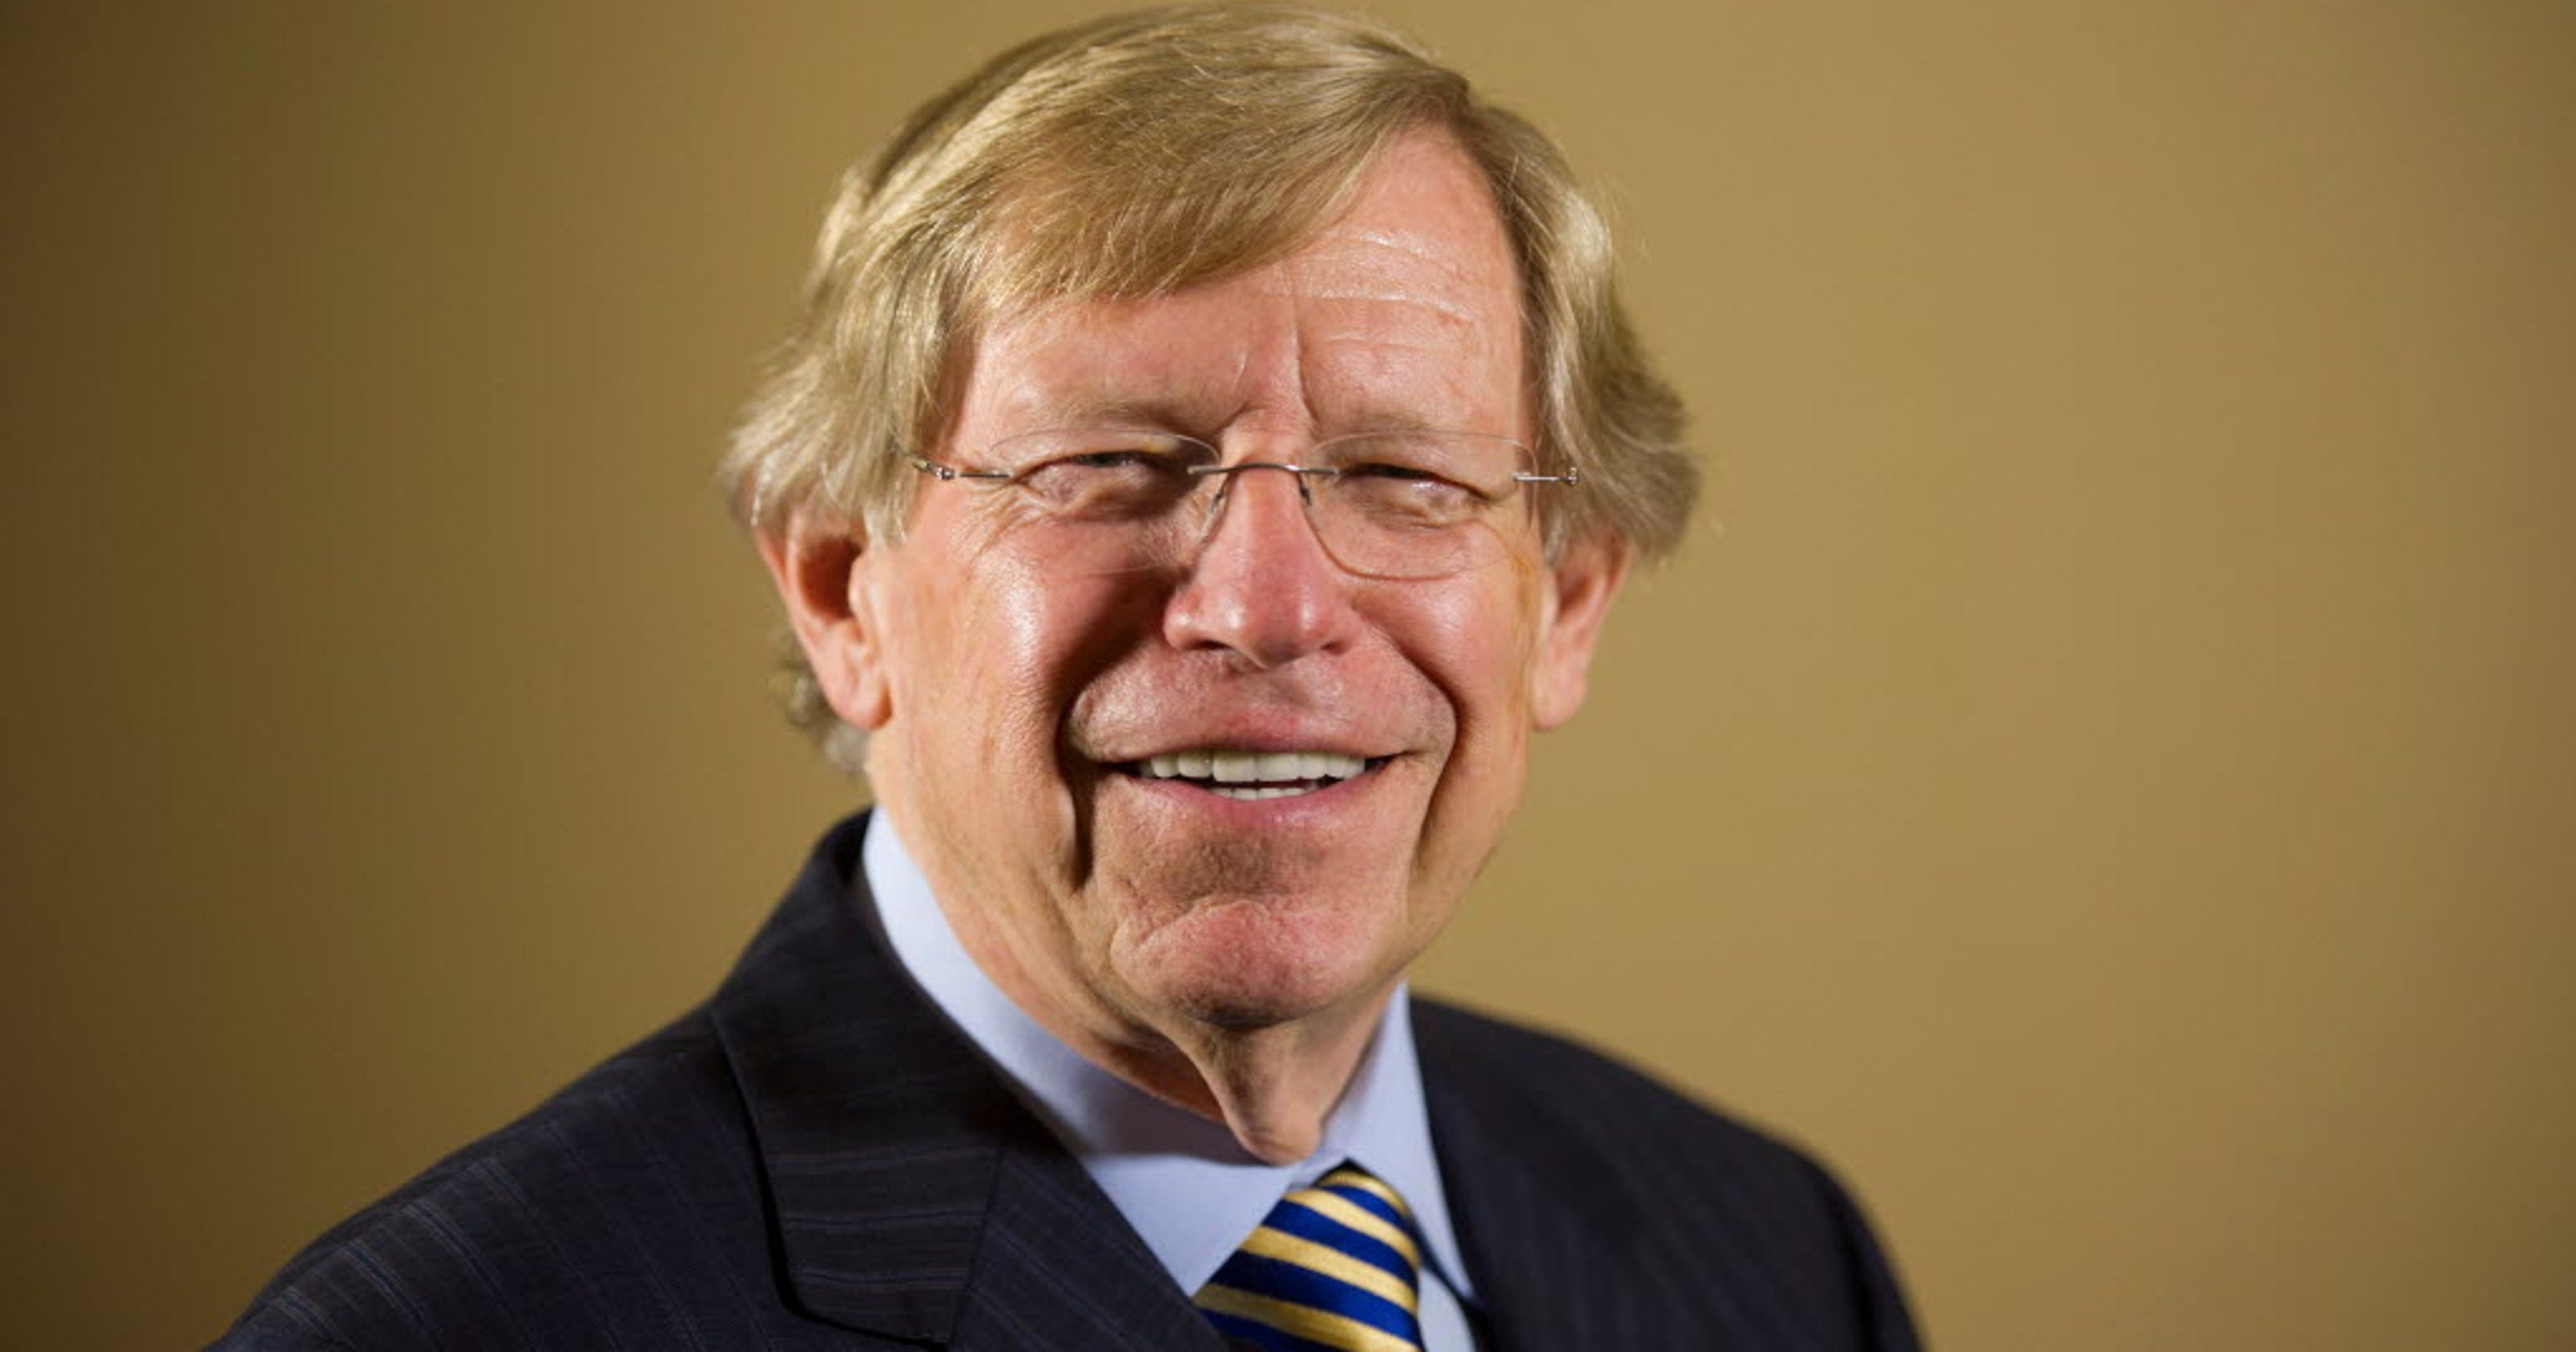 from Saul theodore olson gay marriage